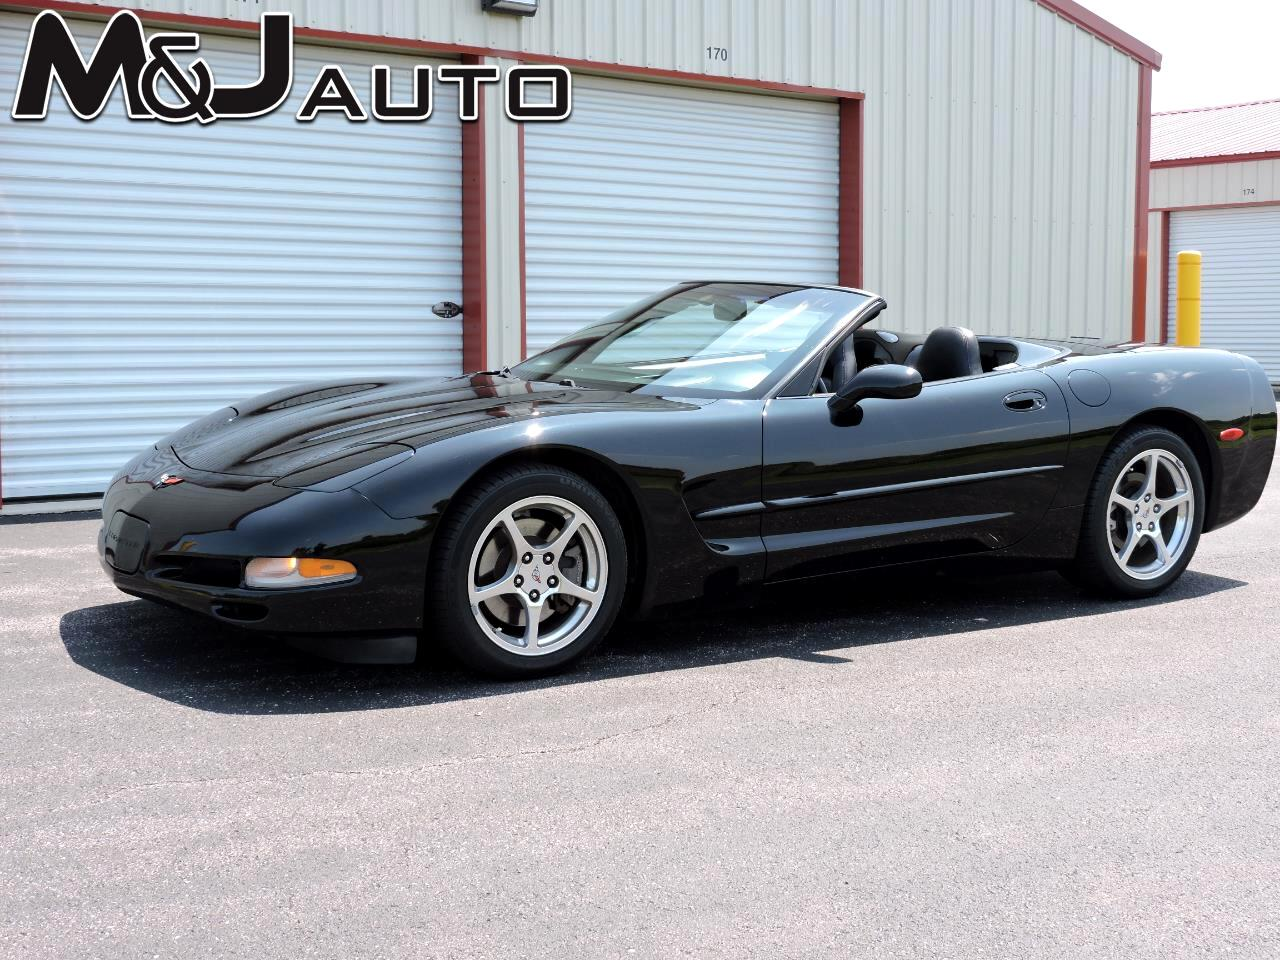 Used 2000 Chevrolet Corvette 2dr Convertible For Sale In